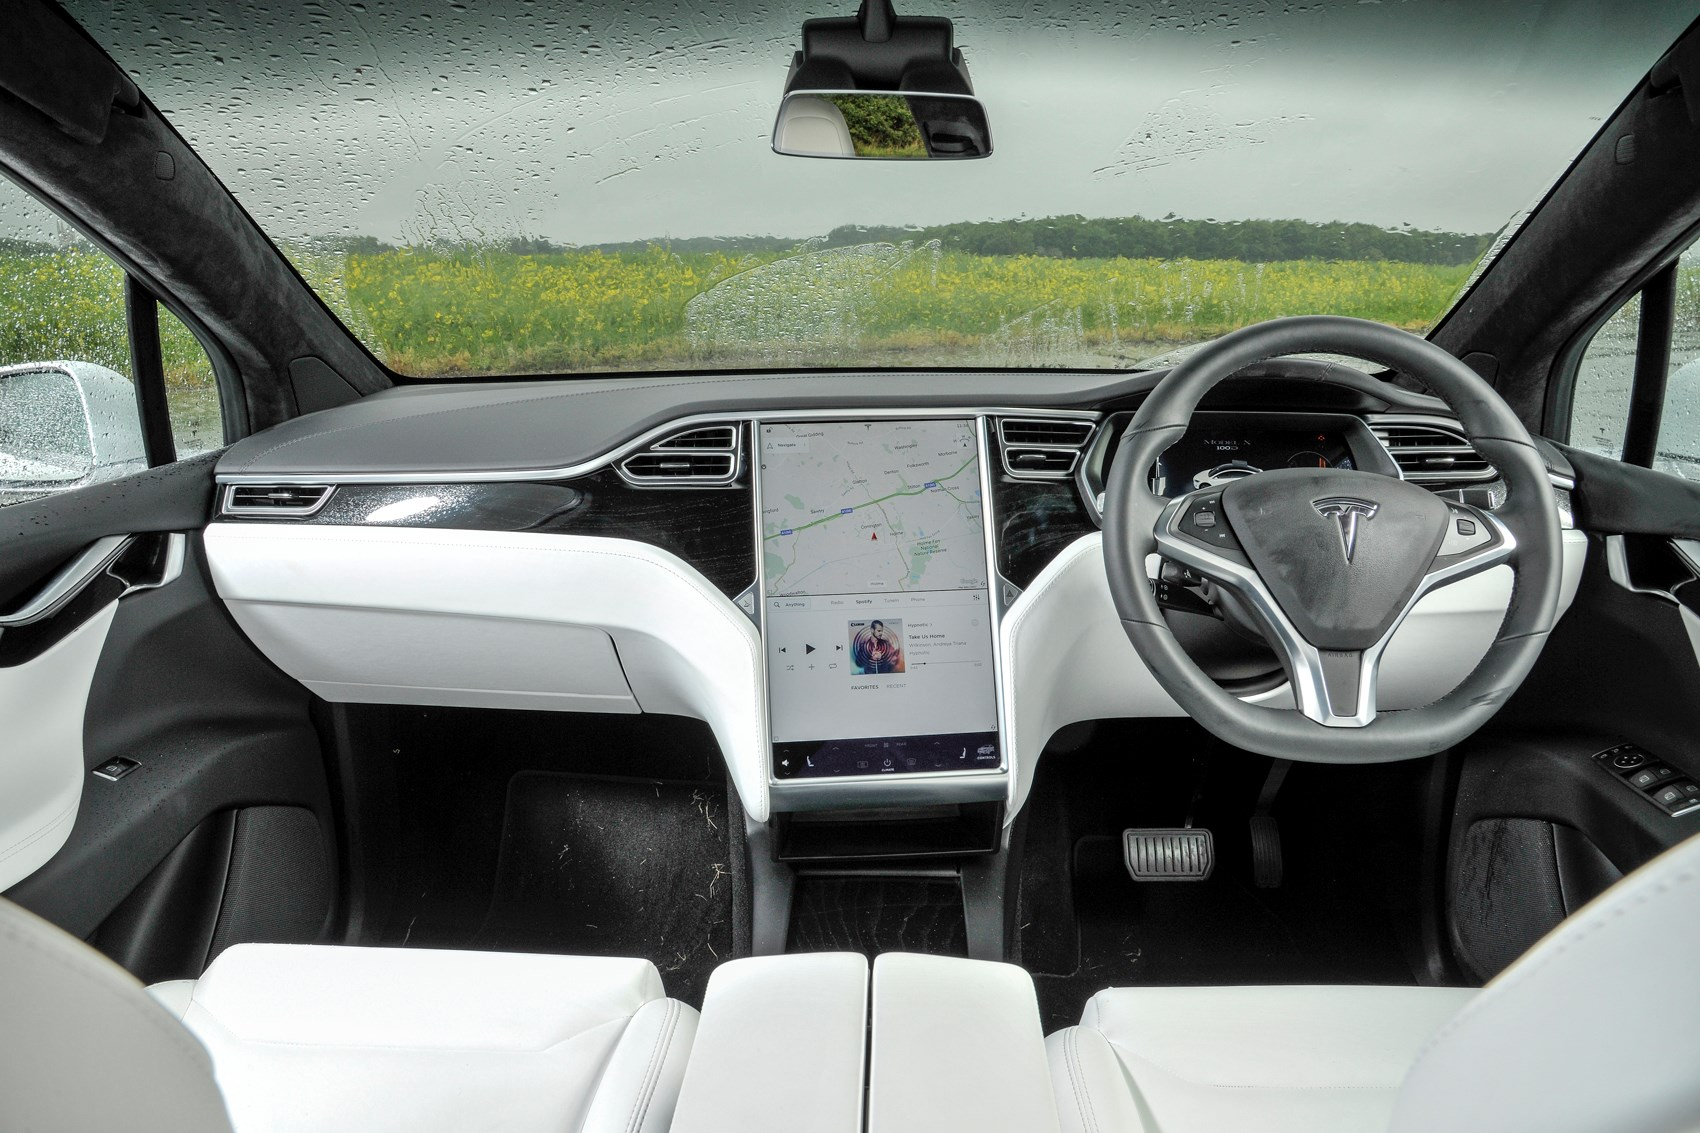 Tesla Model X SUV (2016 - ) Driving & Performance | Parkers